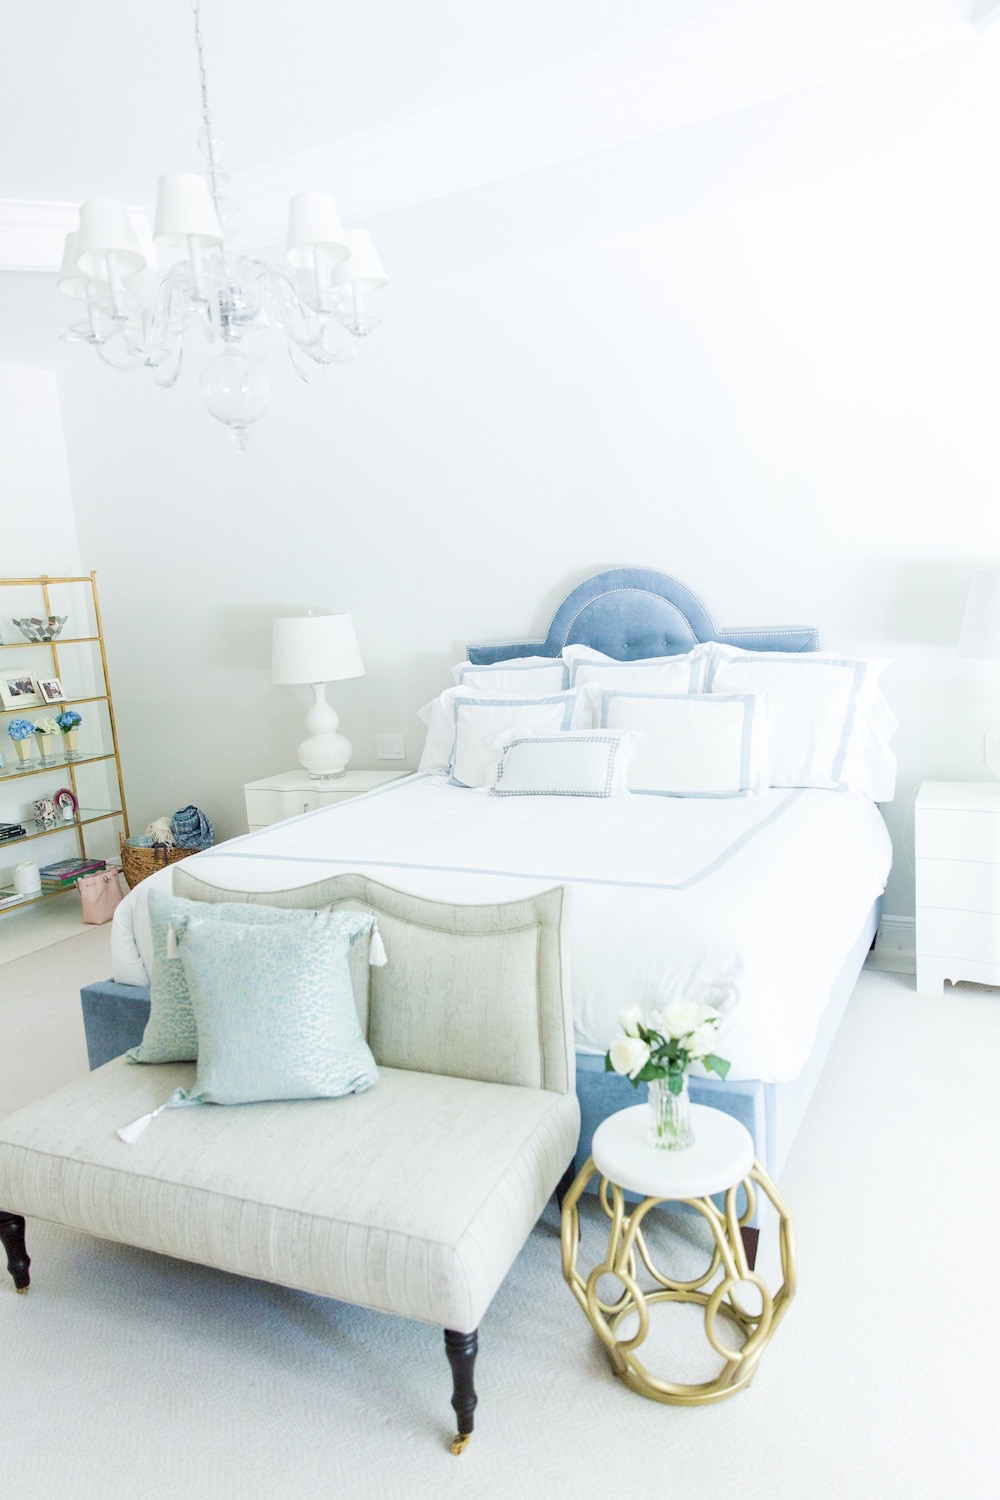 Miami Master Bedroom - MiaChateauFH by fashionable Hostess4